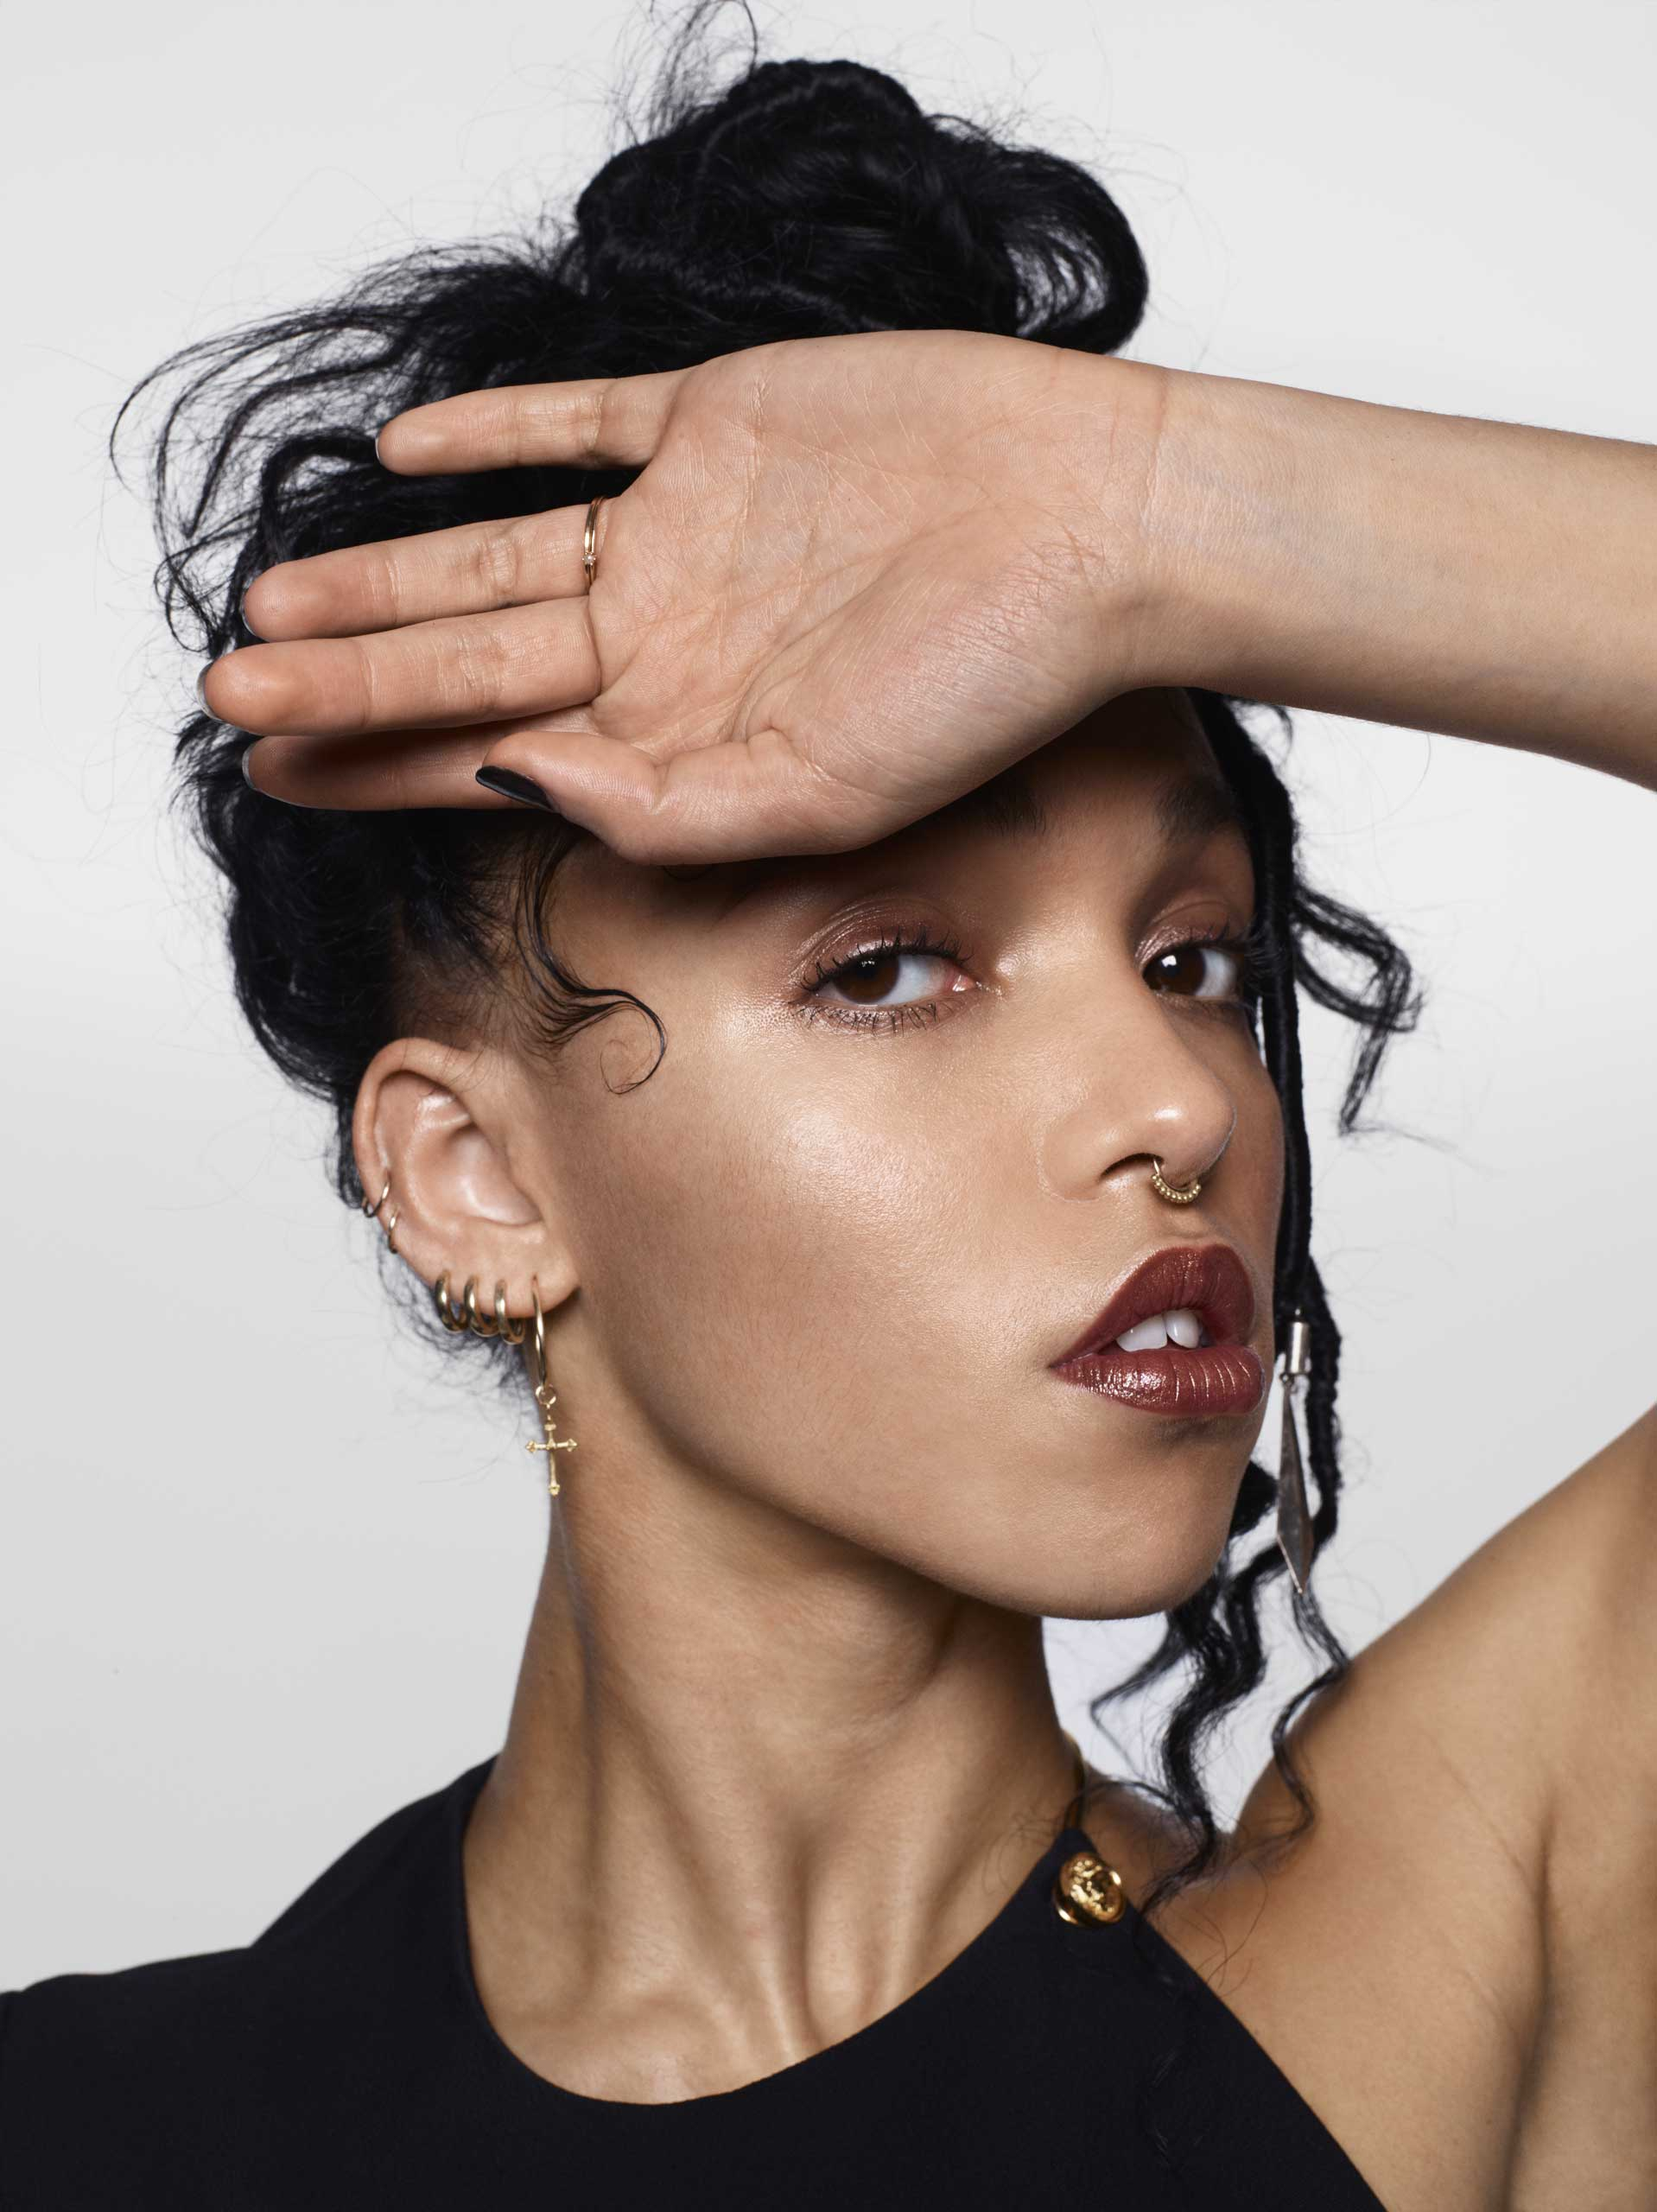 FKA twigs. From  The Best of Culture 2014.  Dec. 22 / Dec. 29, 2014 issue.